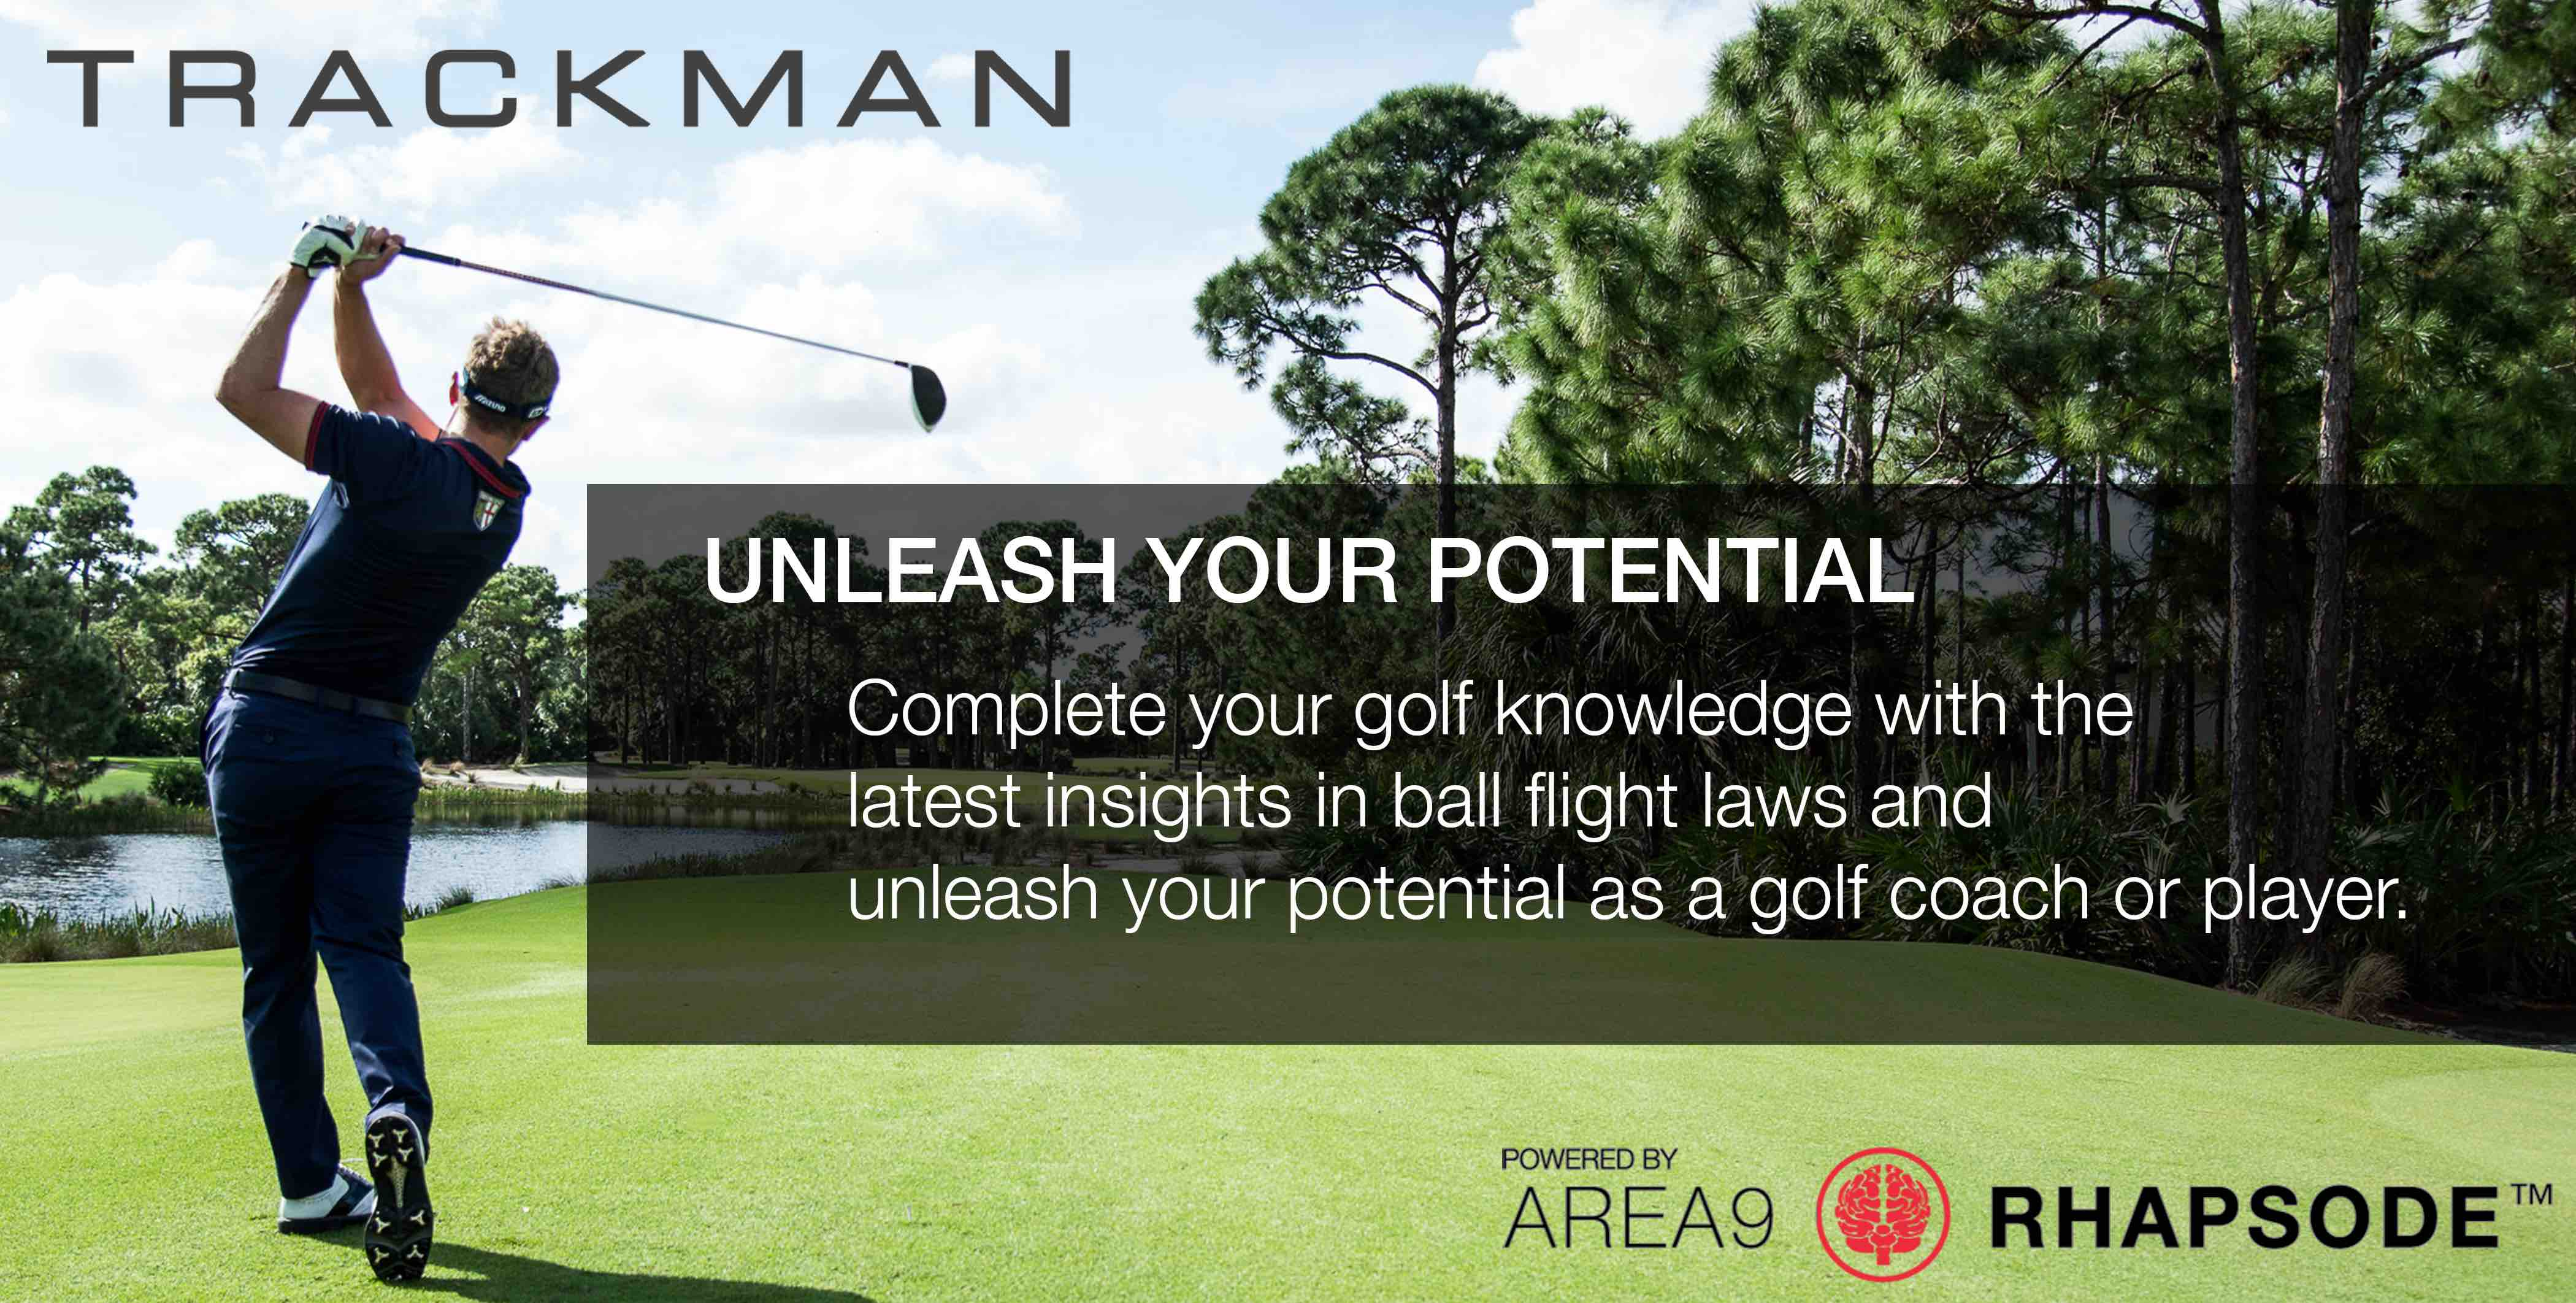 Area9 Lyceum and TrackMan Unleash Your Potential Golf Knowledge Golf Ball Flight Laws Experience Adaptive Learning Banner